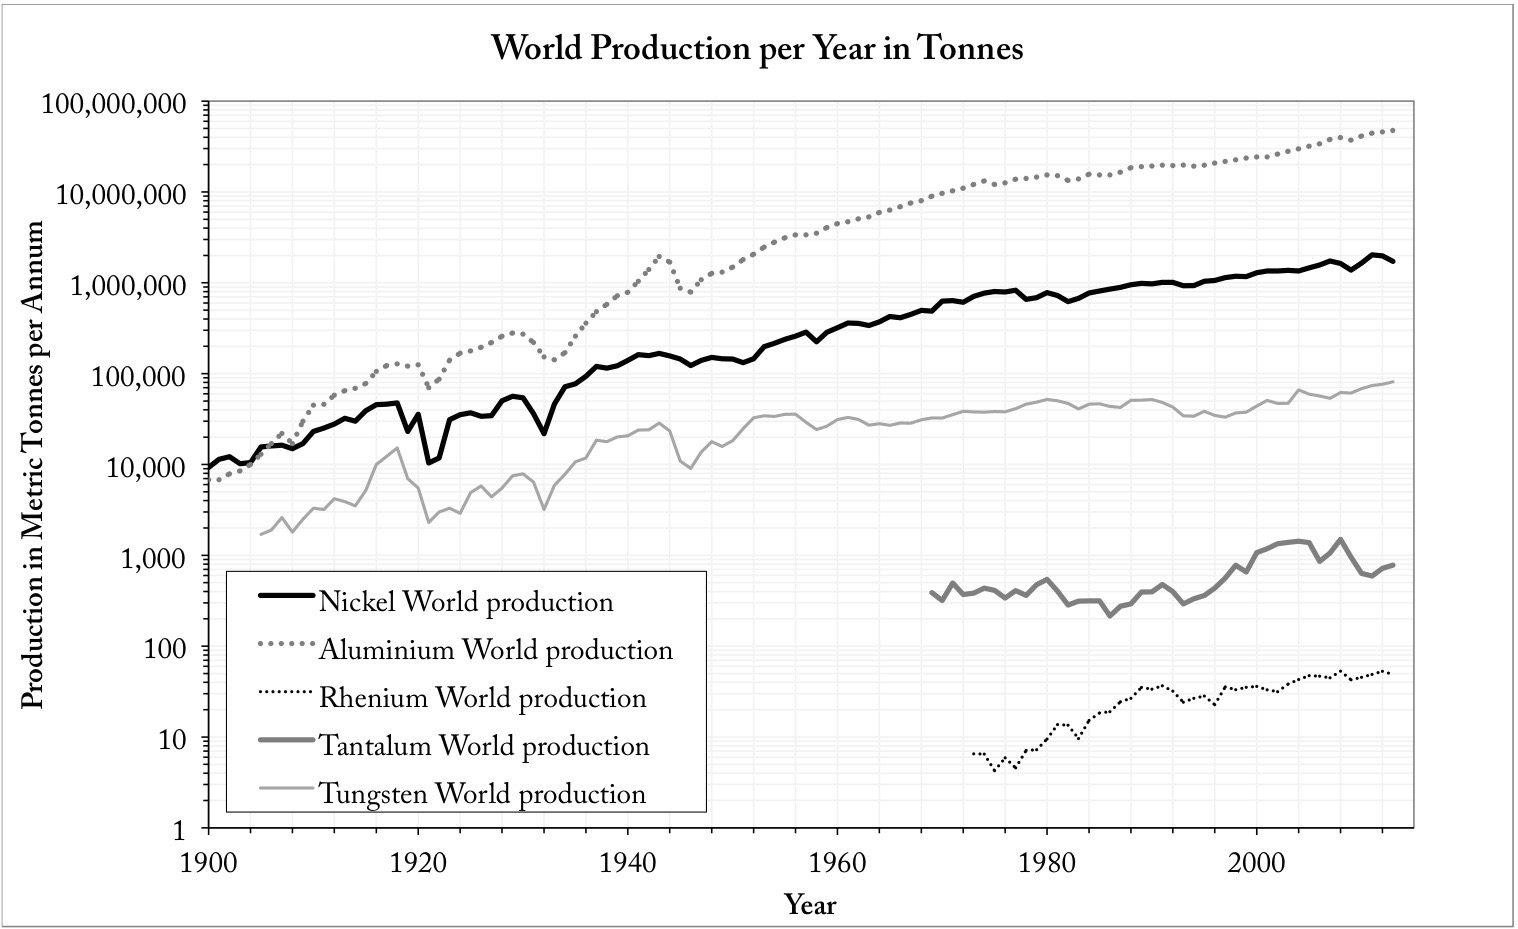 World production of key alloying elements used in jet engine blades in tonnes per year over time.